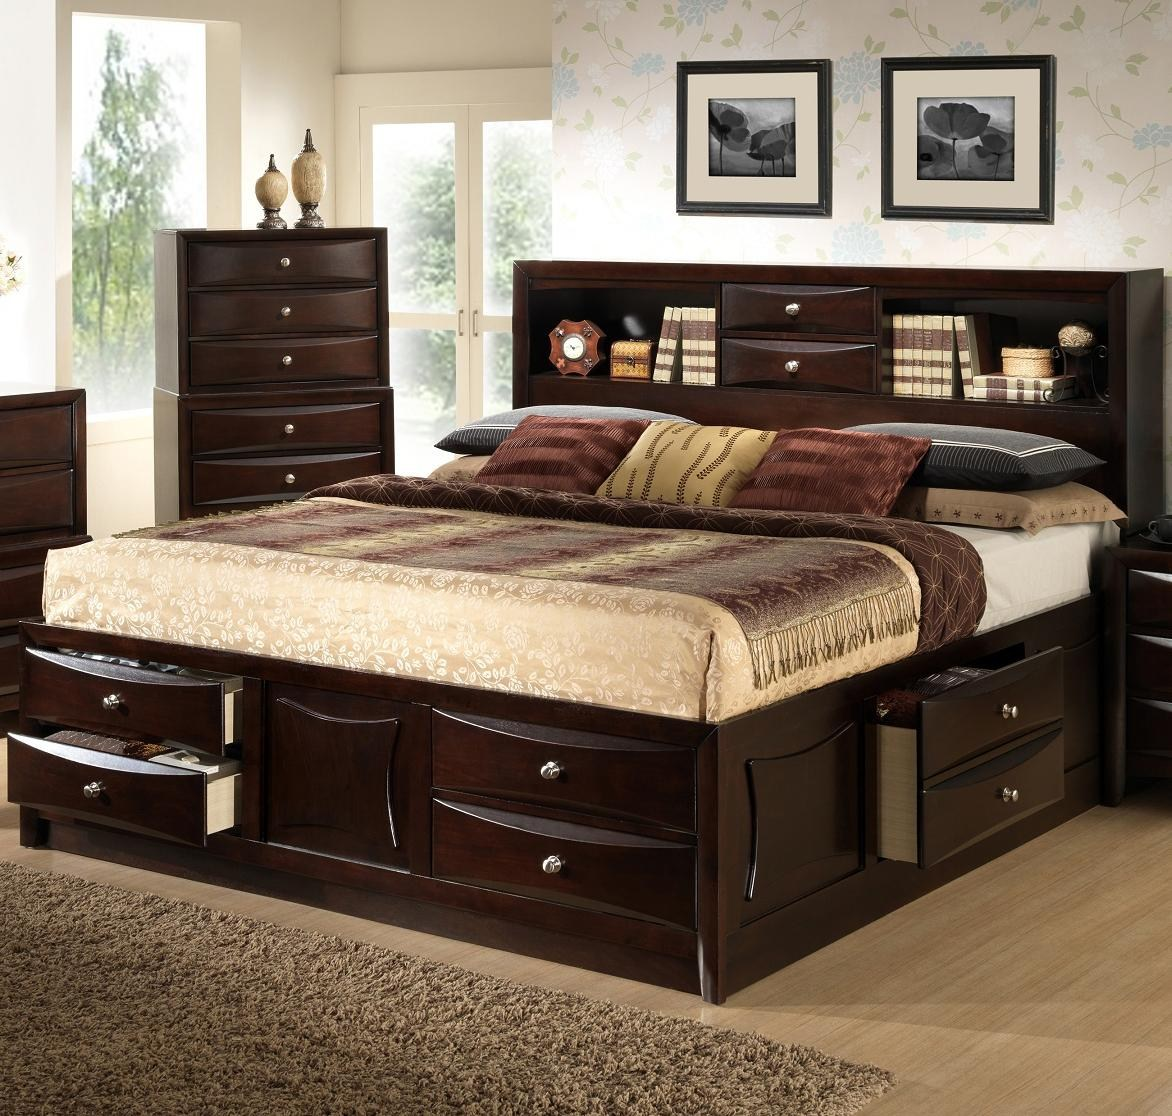 King Storage Bed With Bookcase Headboard: 2 in 1 Great Deal